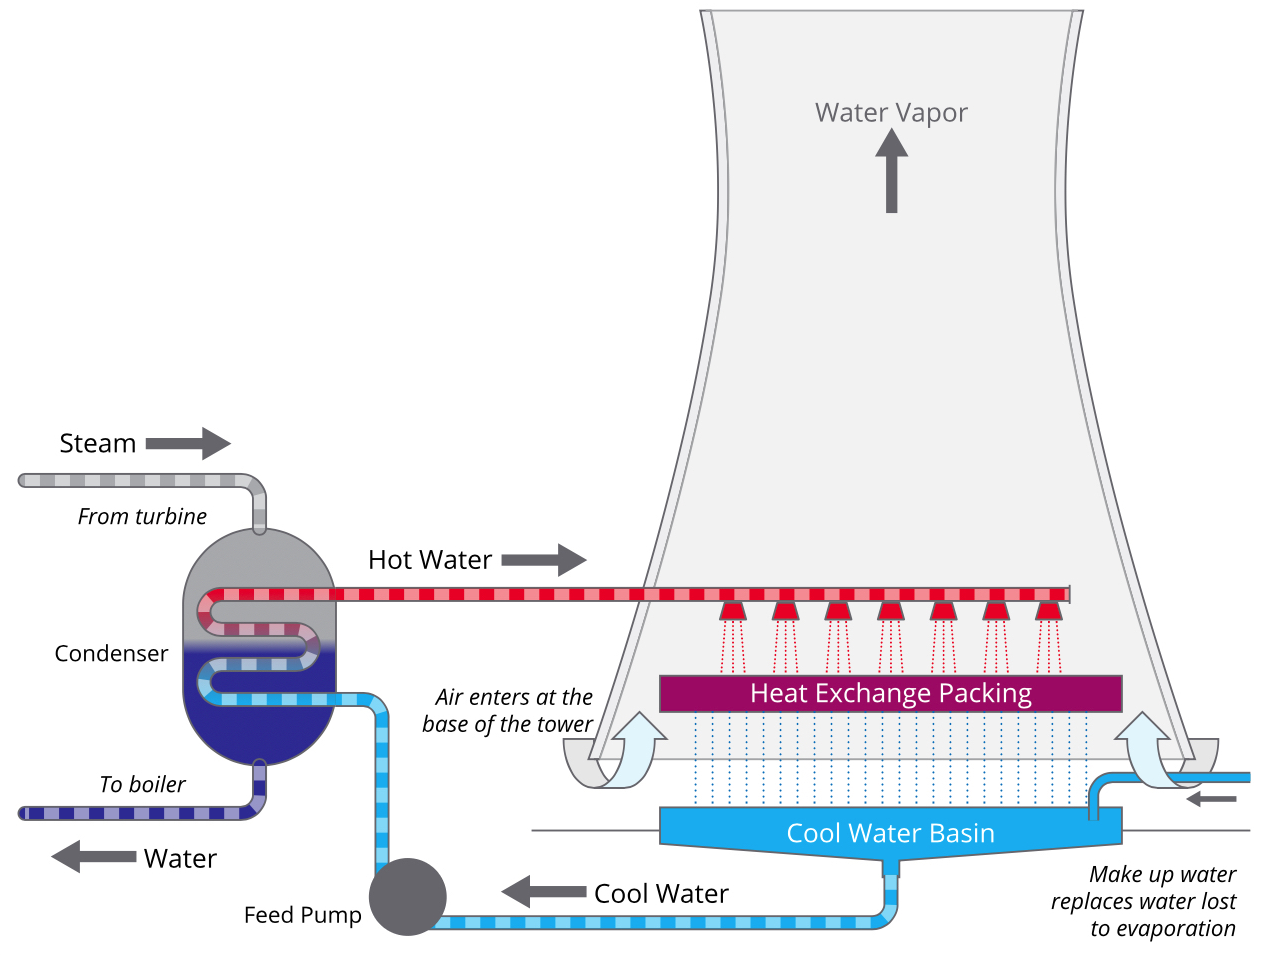 Making Electricity Consumes a Lot of Water--What's the Best